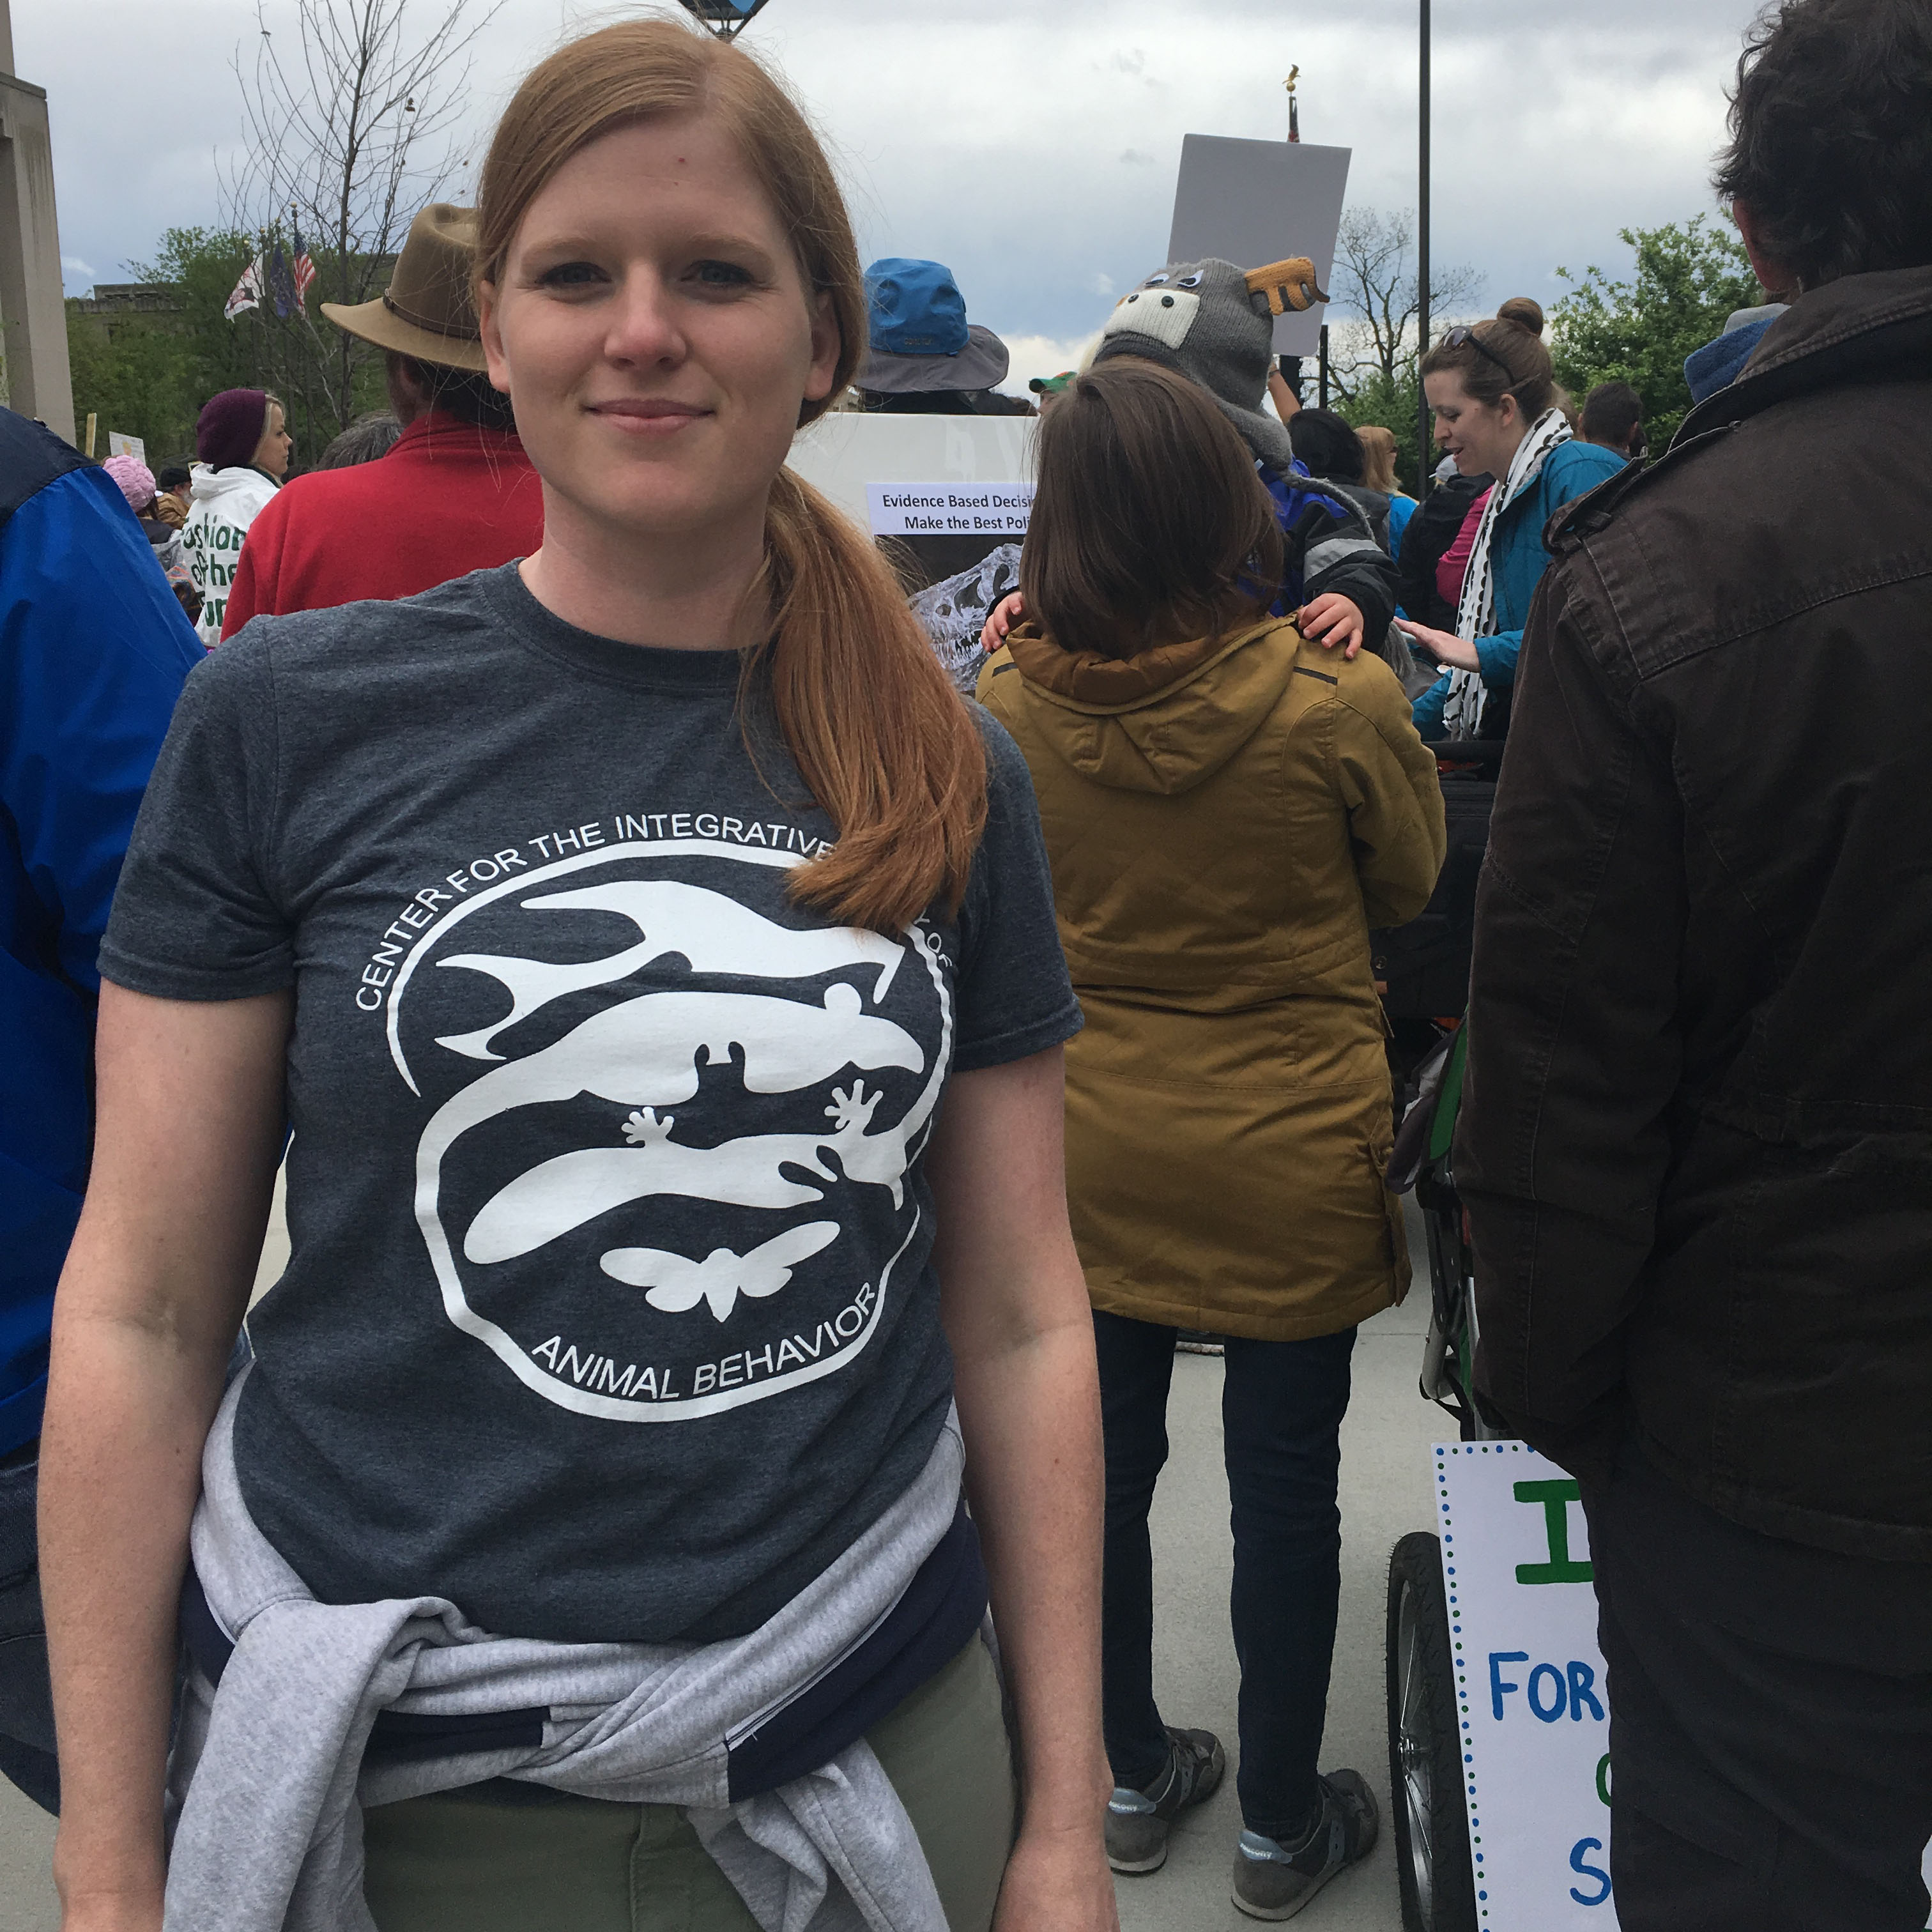 Kelly Ronald at the Indy March for Science